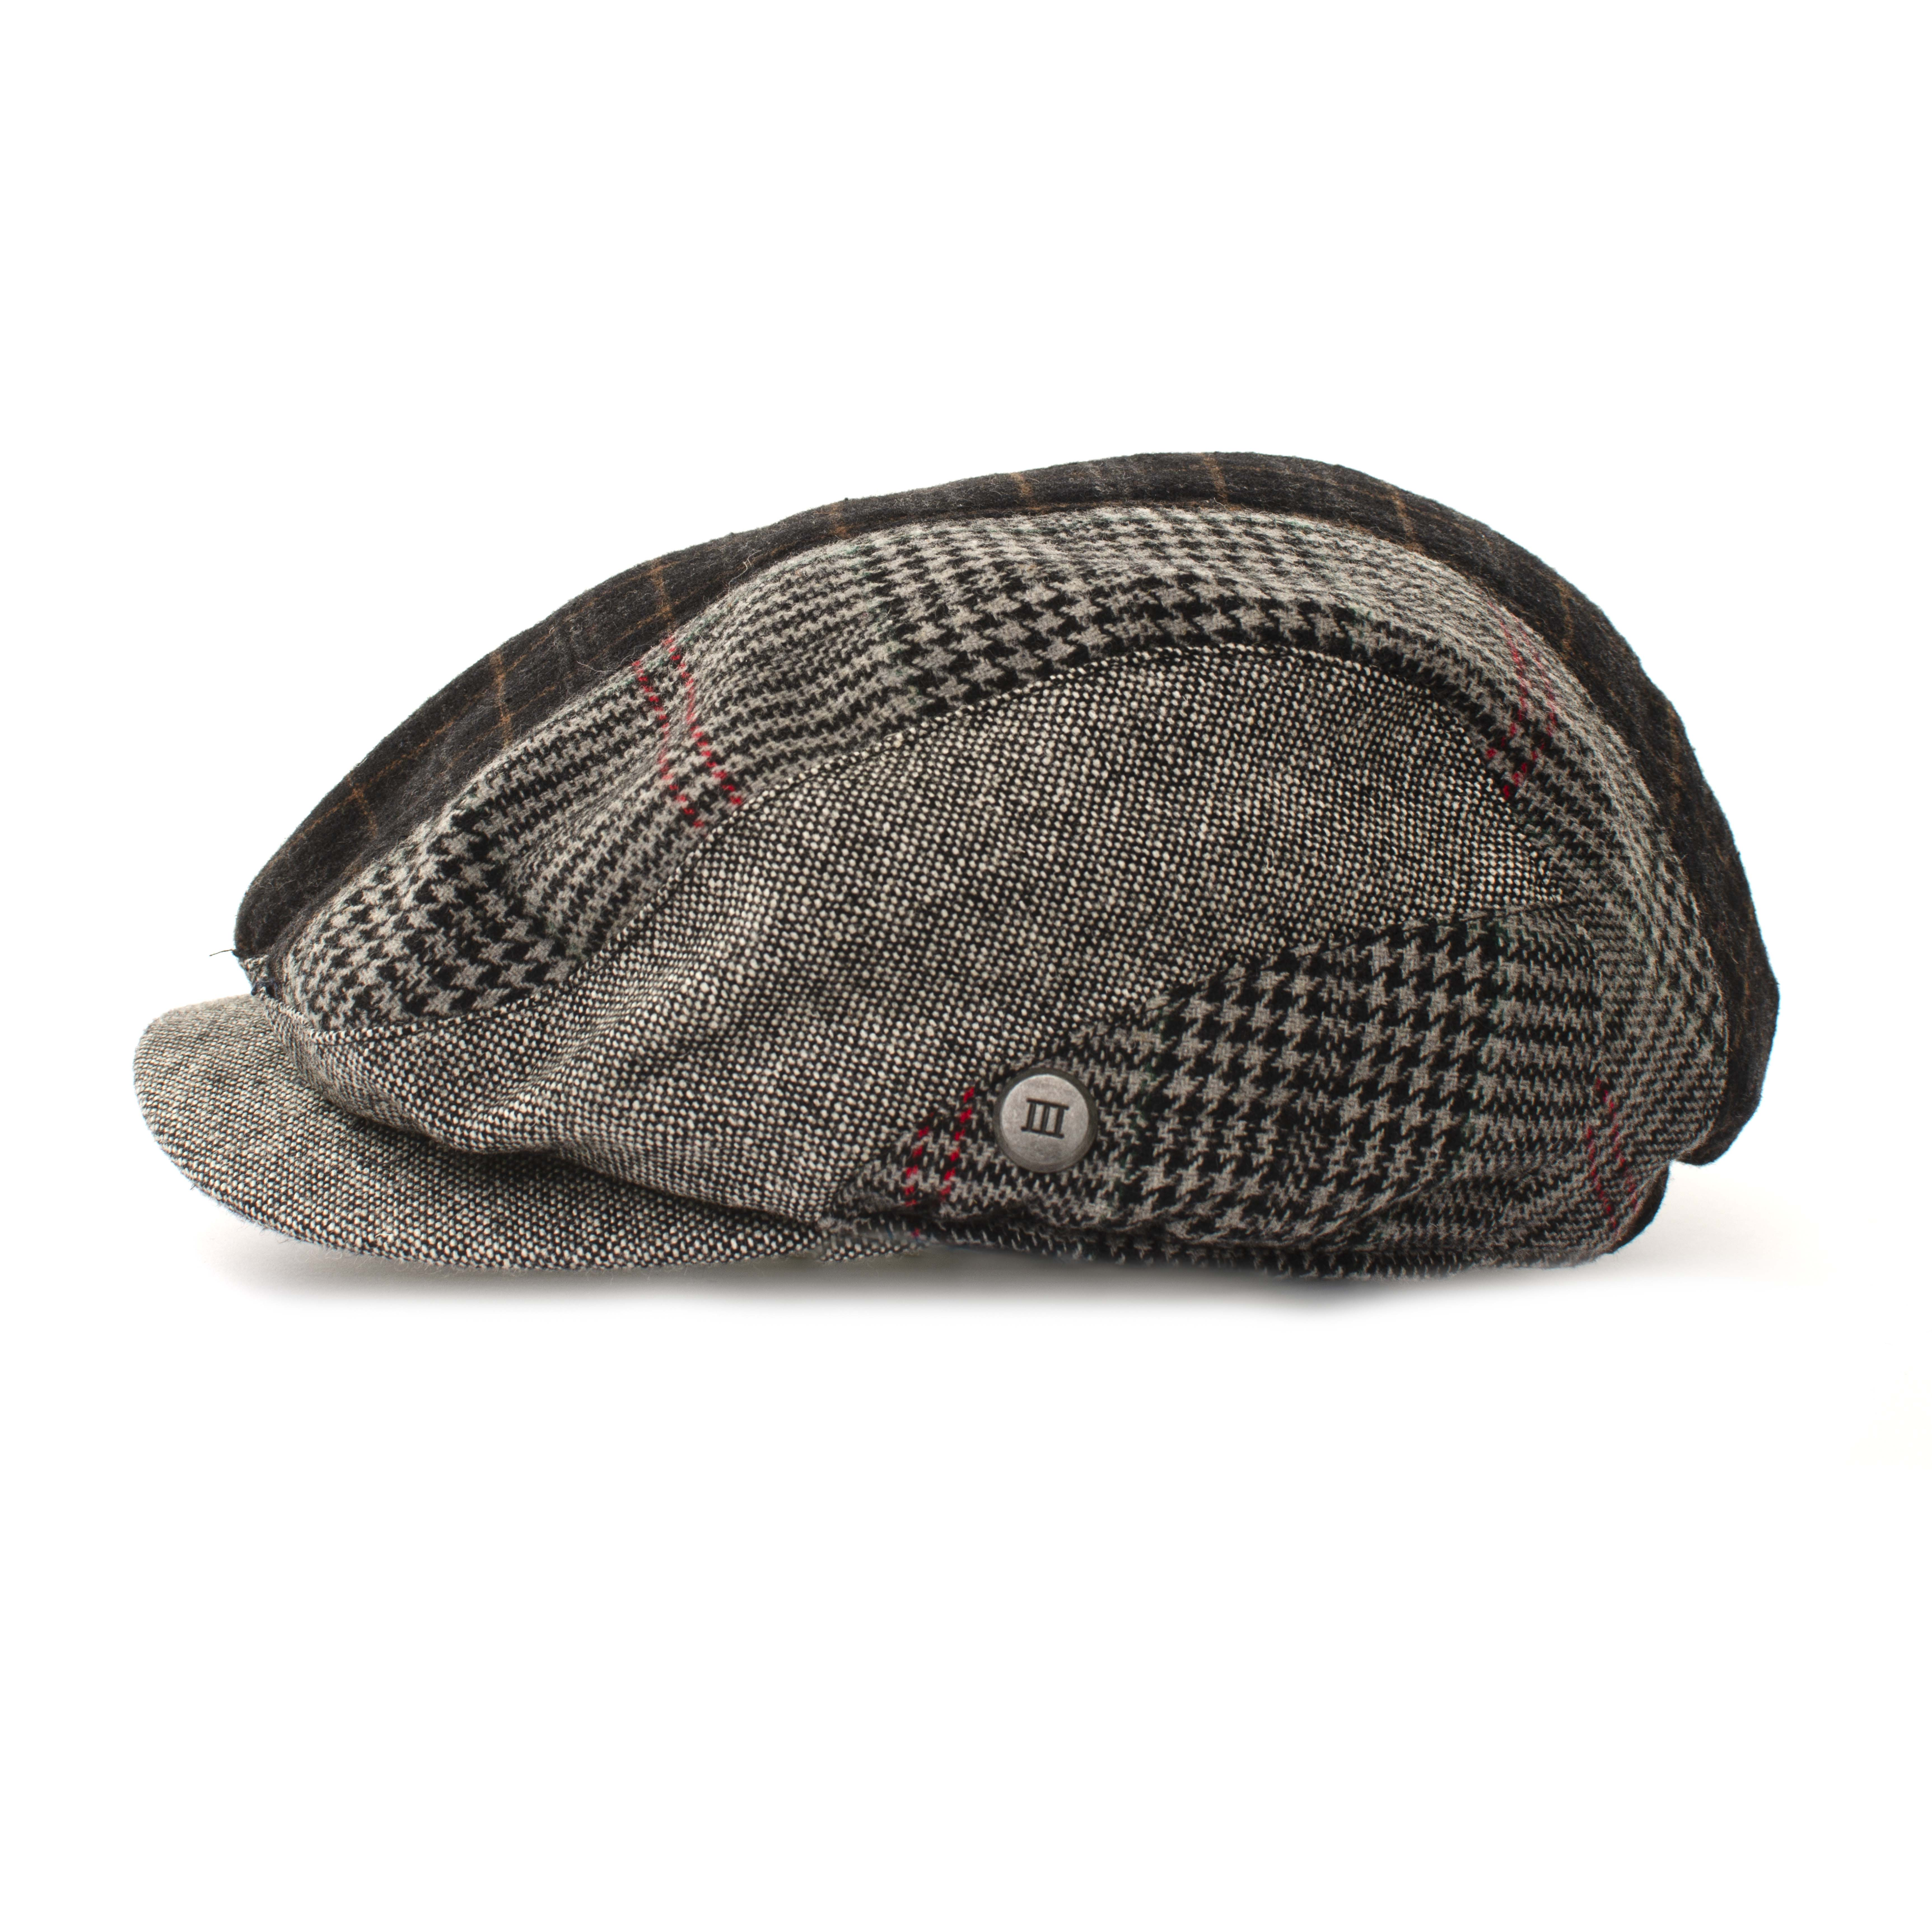 Flatcap with mixed designs